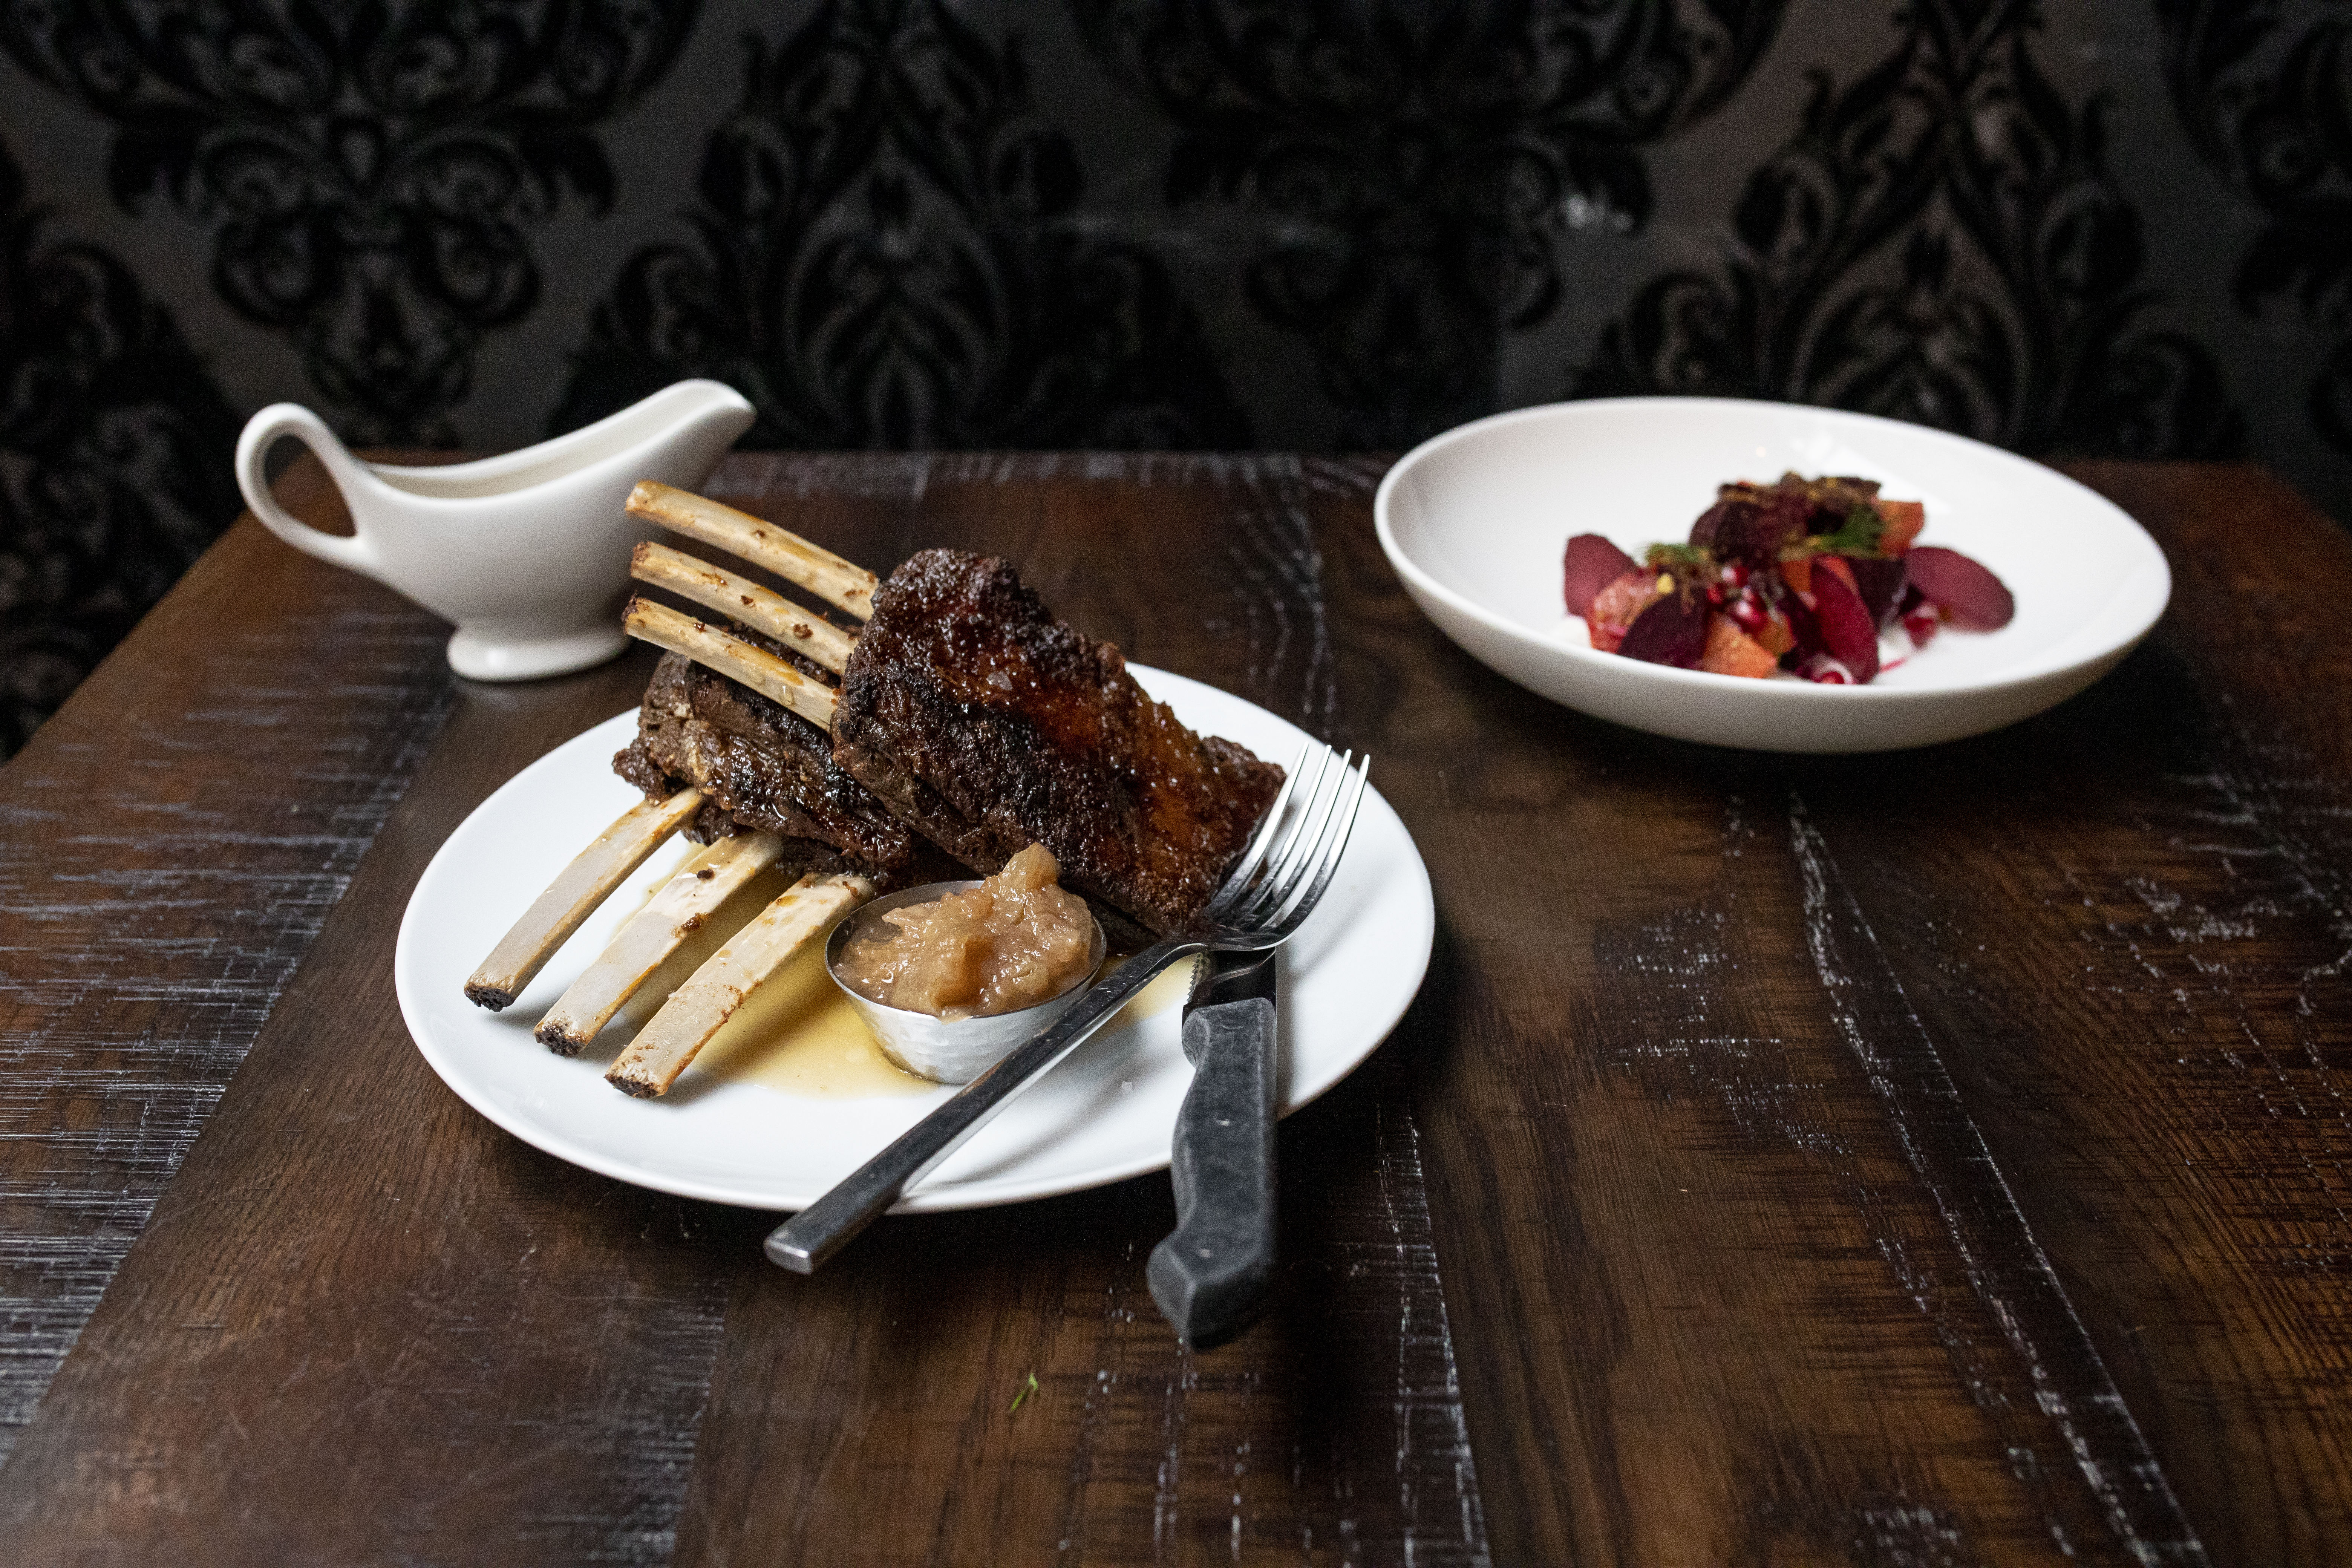 A plate of maple-glazed boar ribs from the Partisan